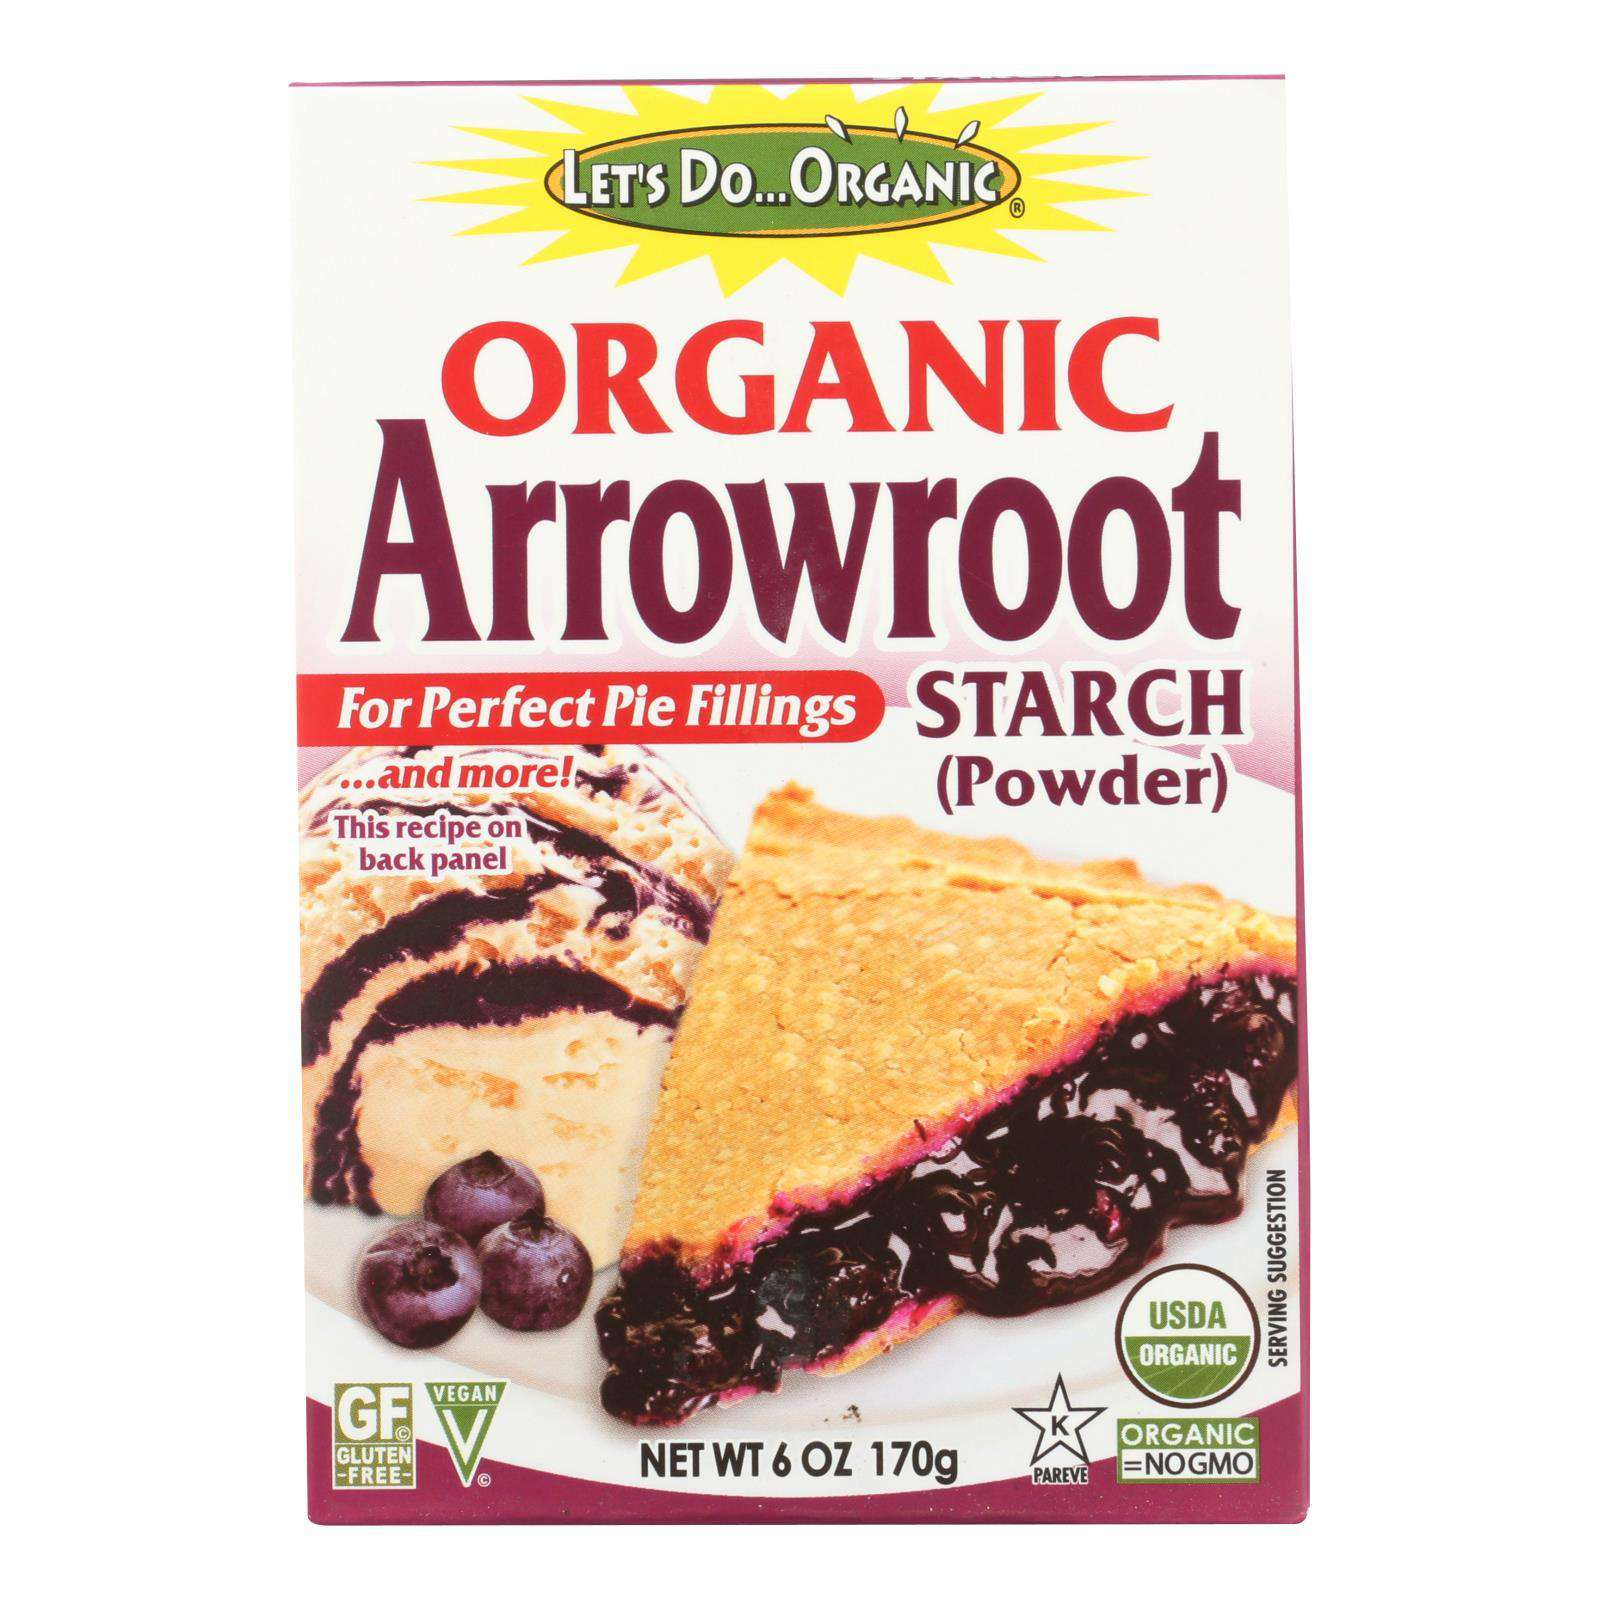 Let's Do Organic - Organic Arrowroot Starch - Case Of 6 - 6 Oz. - BeeGreen